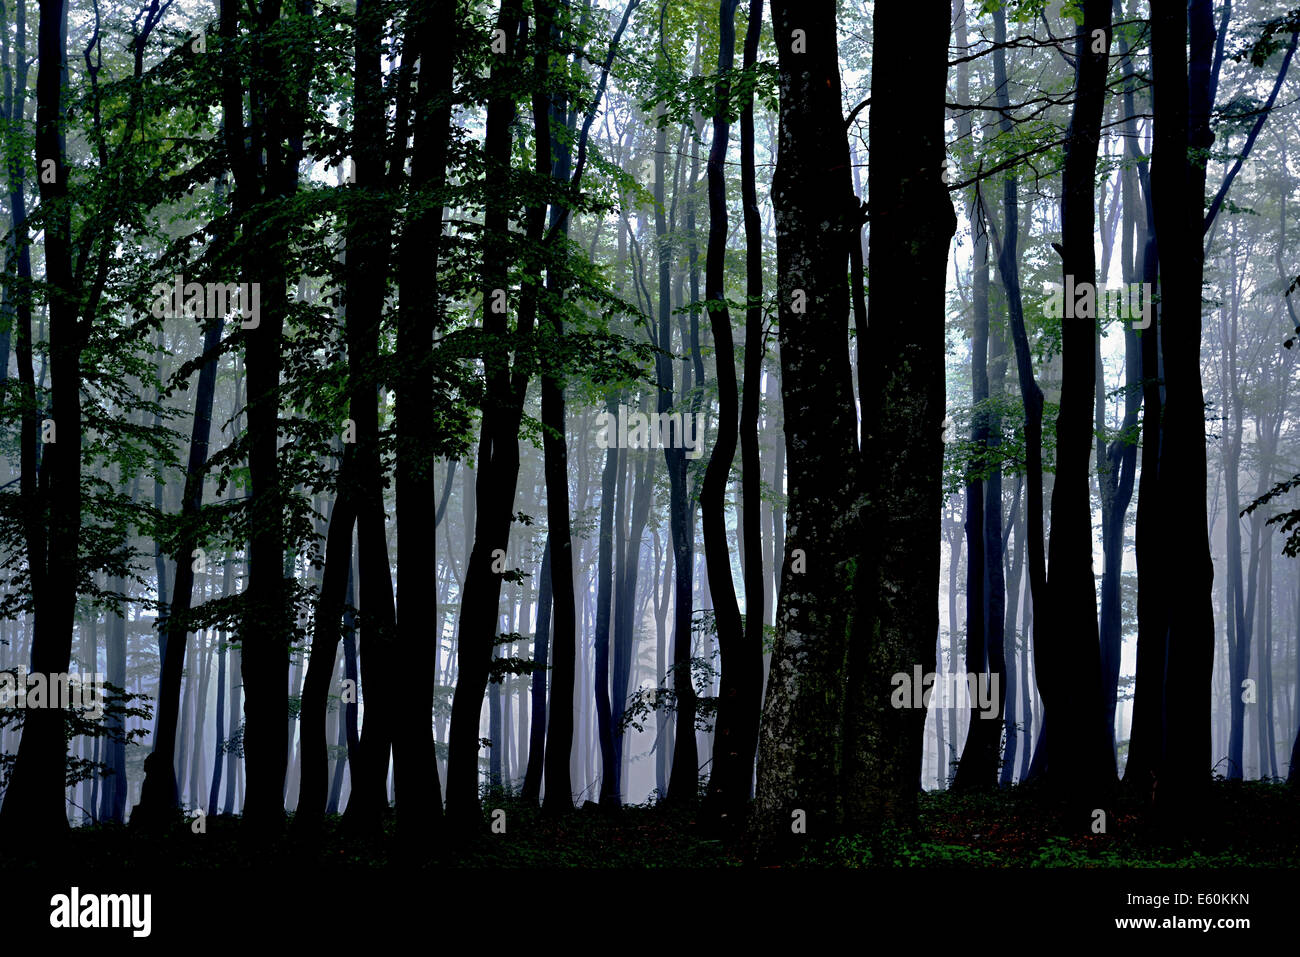 Spooky forest woodland with tall trees and mist. - Stock Image